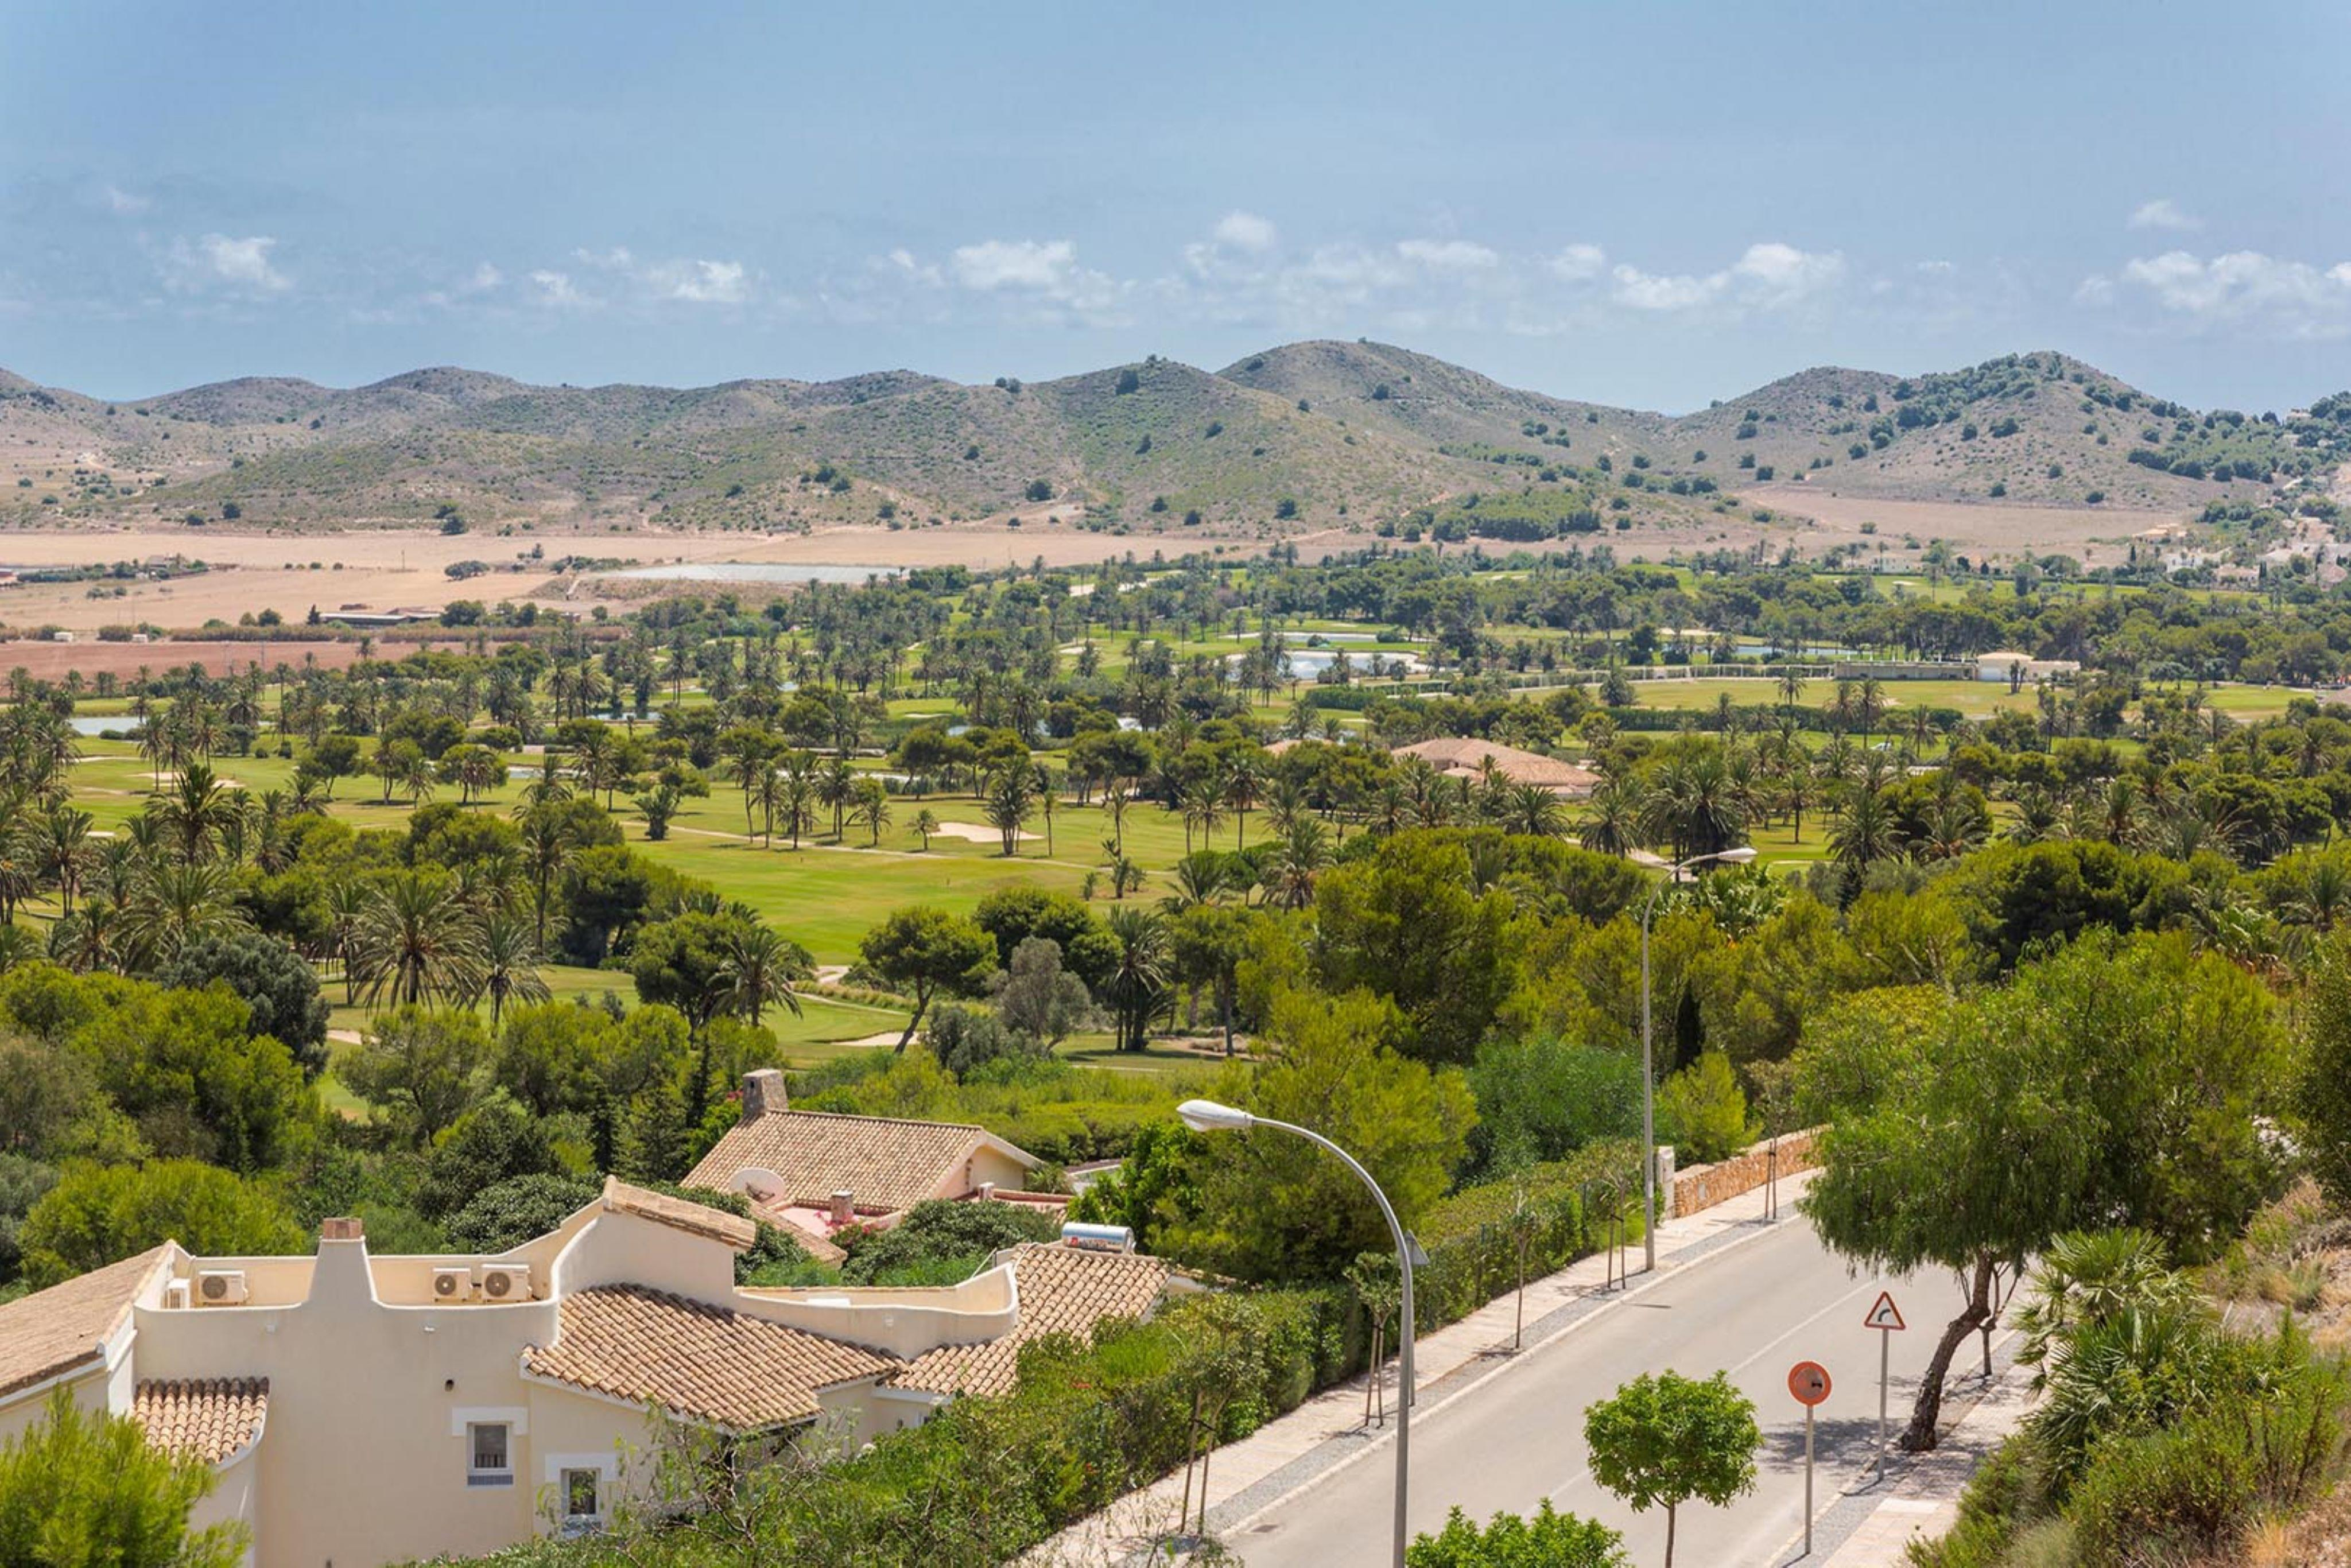 La Manga Club Resort - Buena Vista 583 2 Bedrooms, for rent